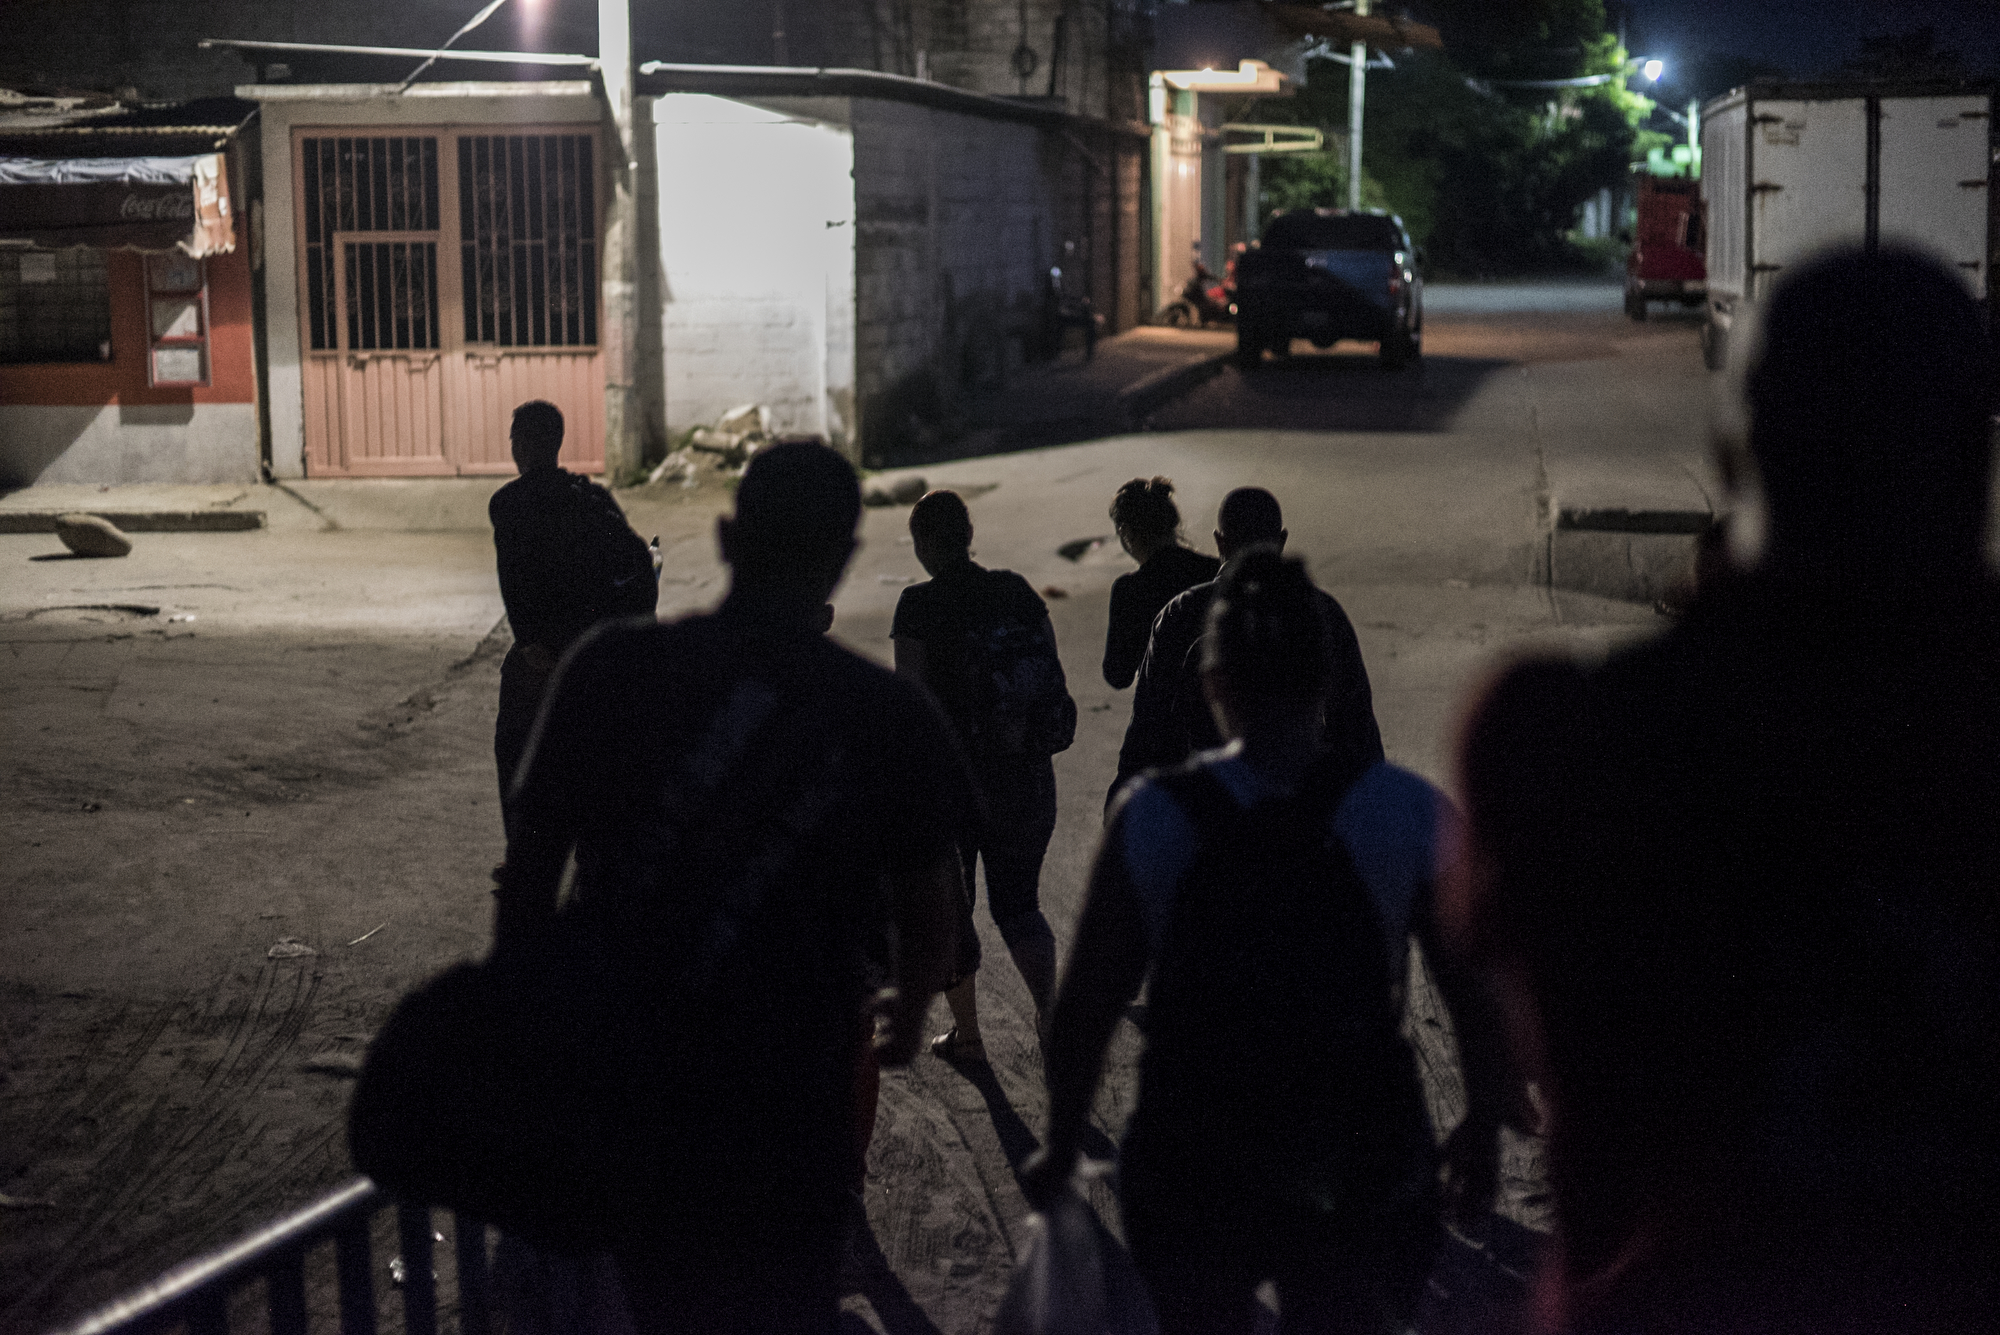 Cuban refugees, who just crossed the Suchiate River into Mexico from Guatemala, head into Ciudad Hidalgo to get a bus to nearby Tapachula in the early morning hours of October 15, 2015.